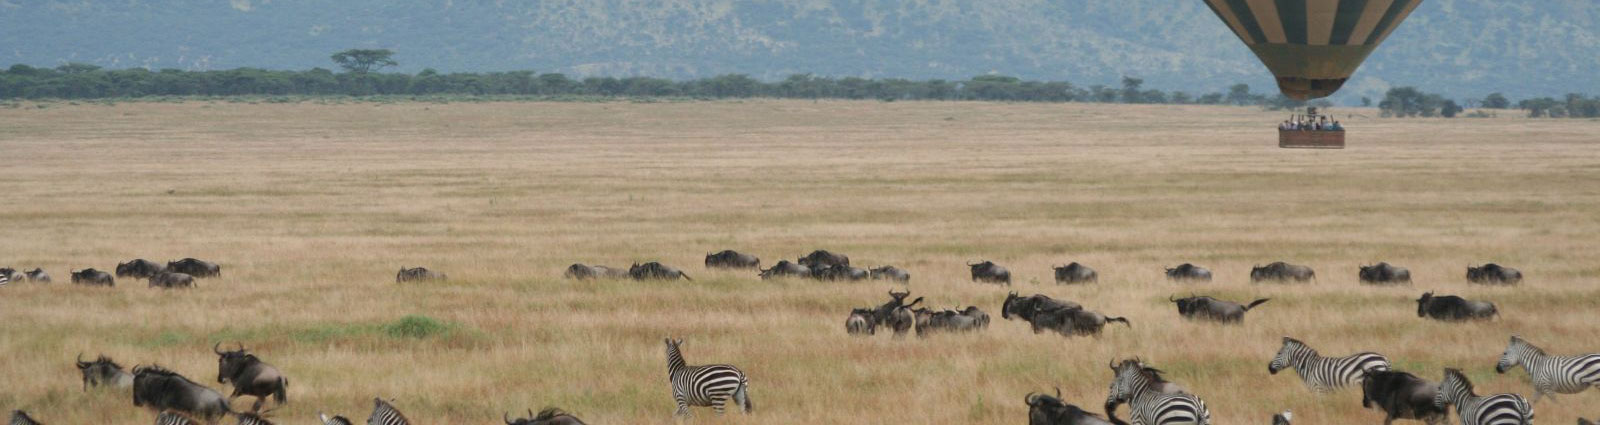 Wildebeest and zebras